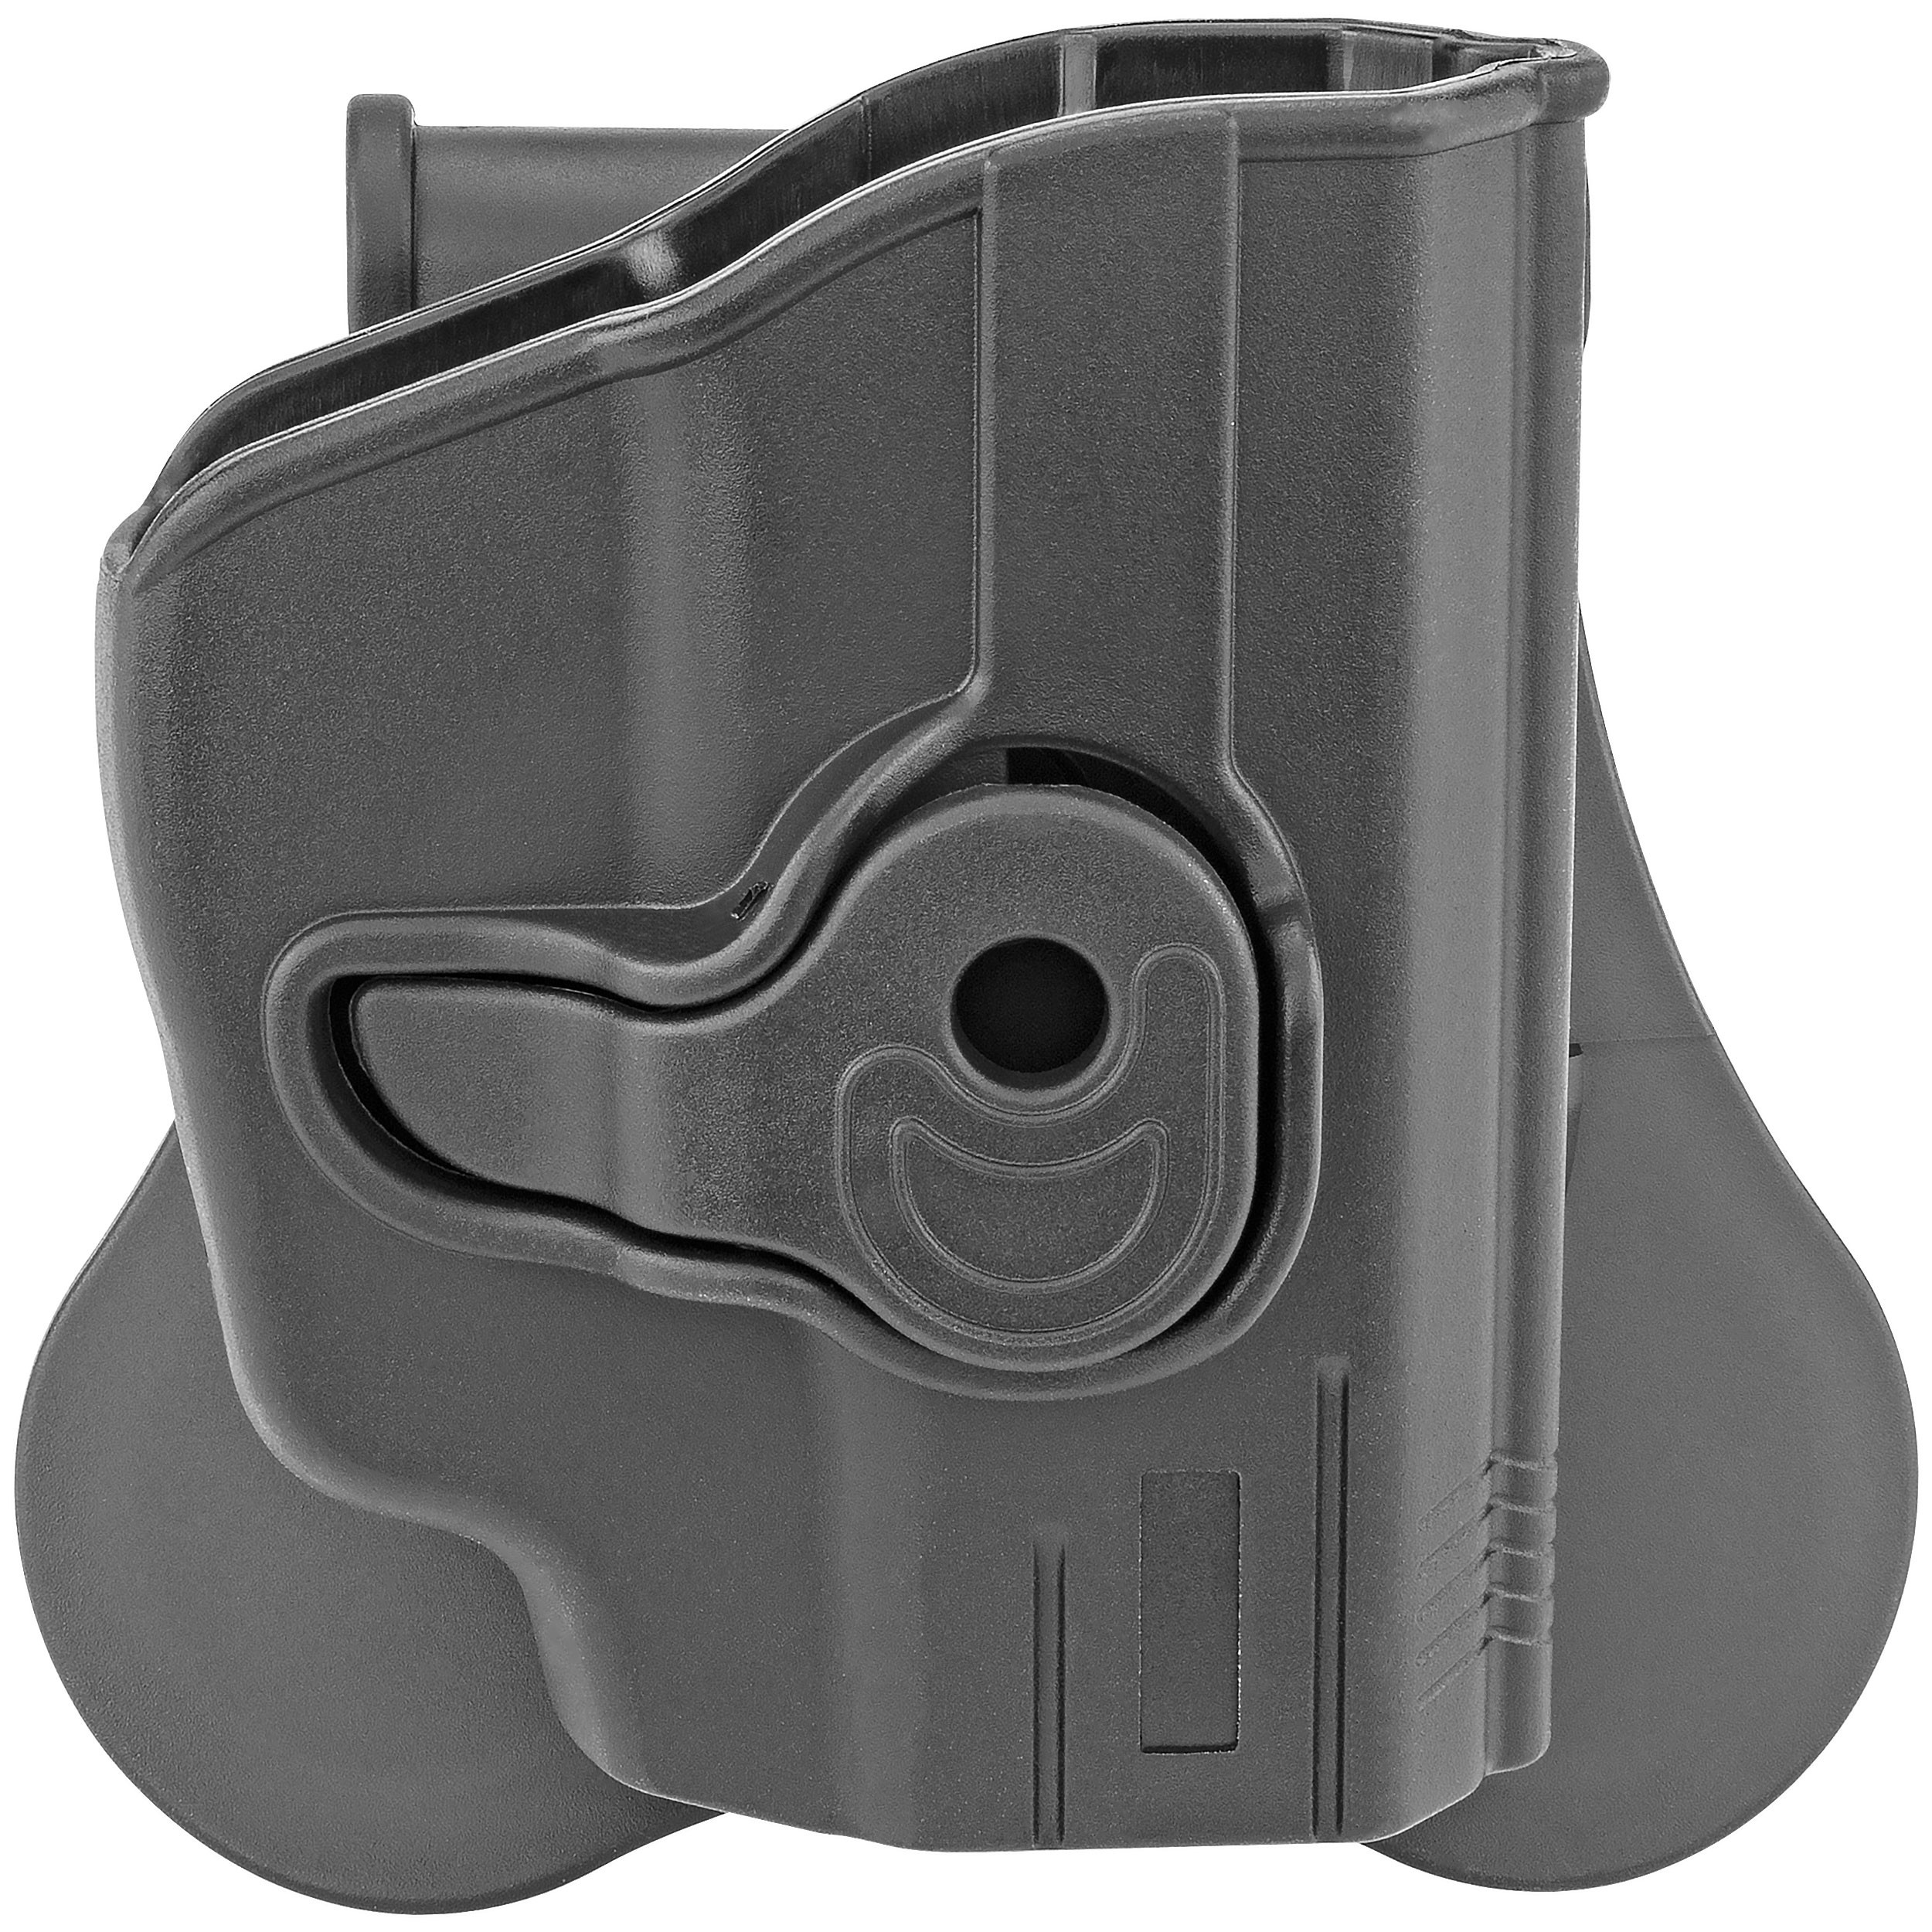 Fits Ruger LC9 with Crimson Trace Laser    Holster